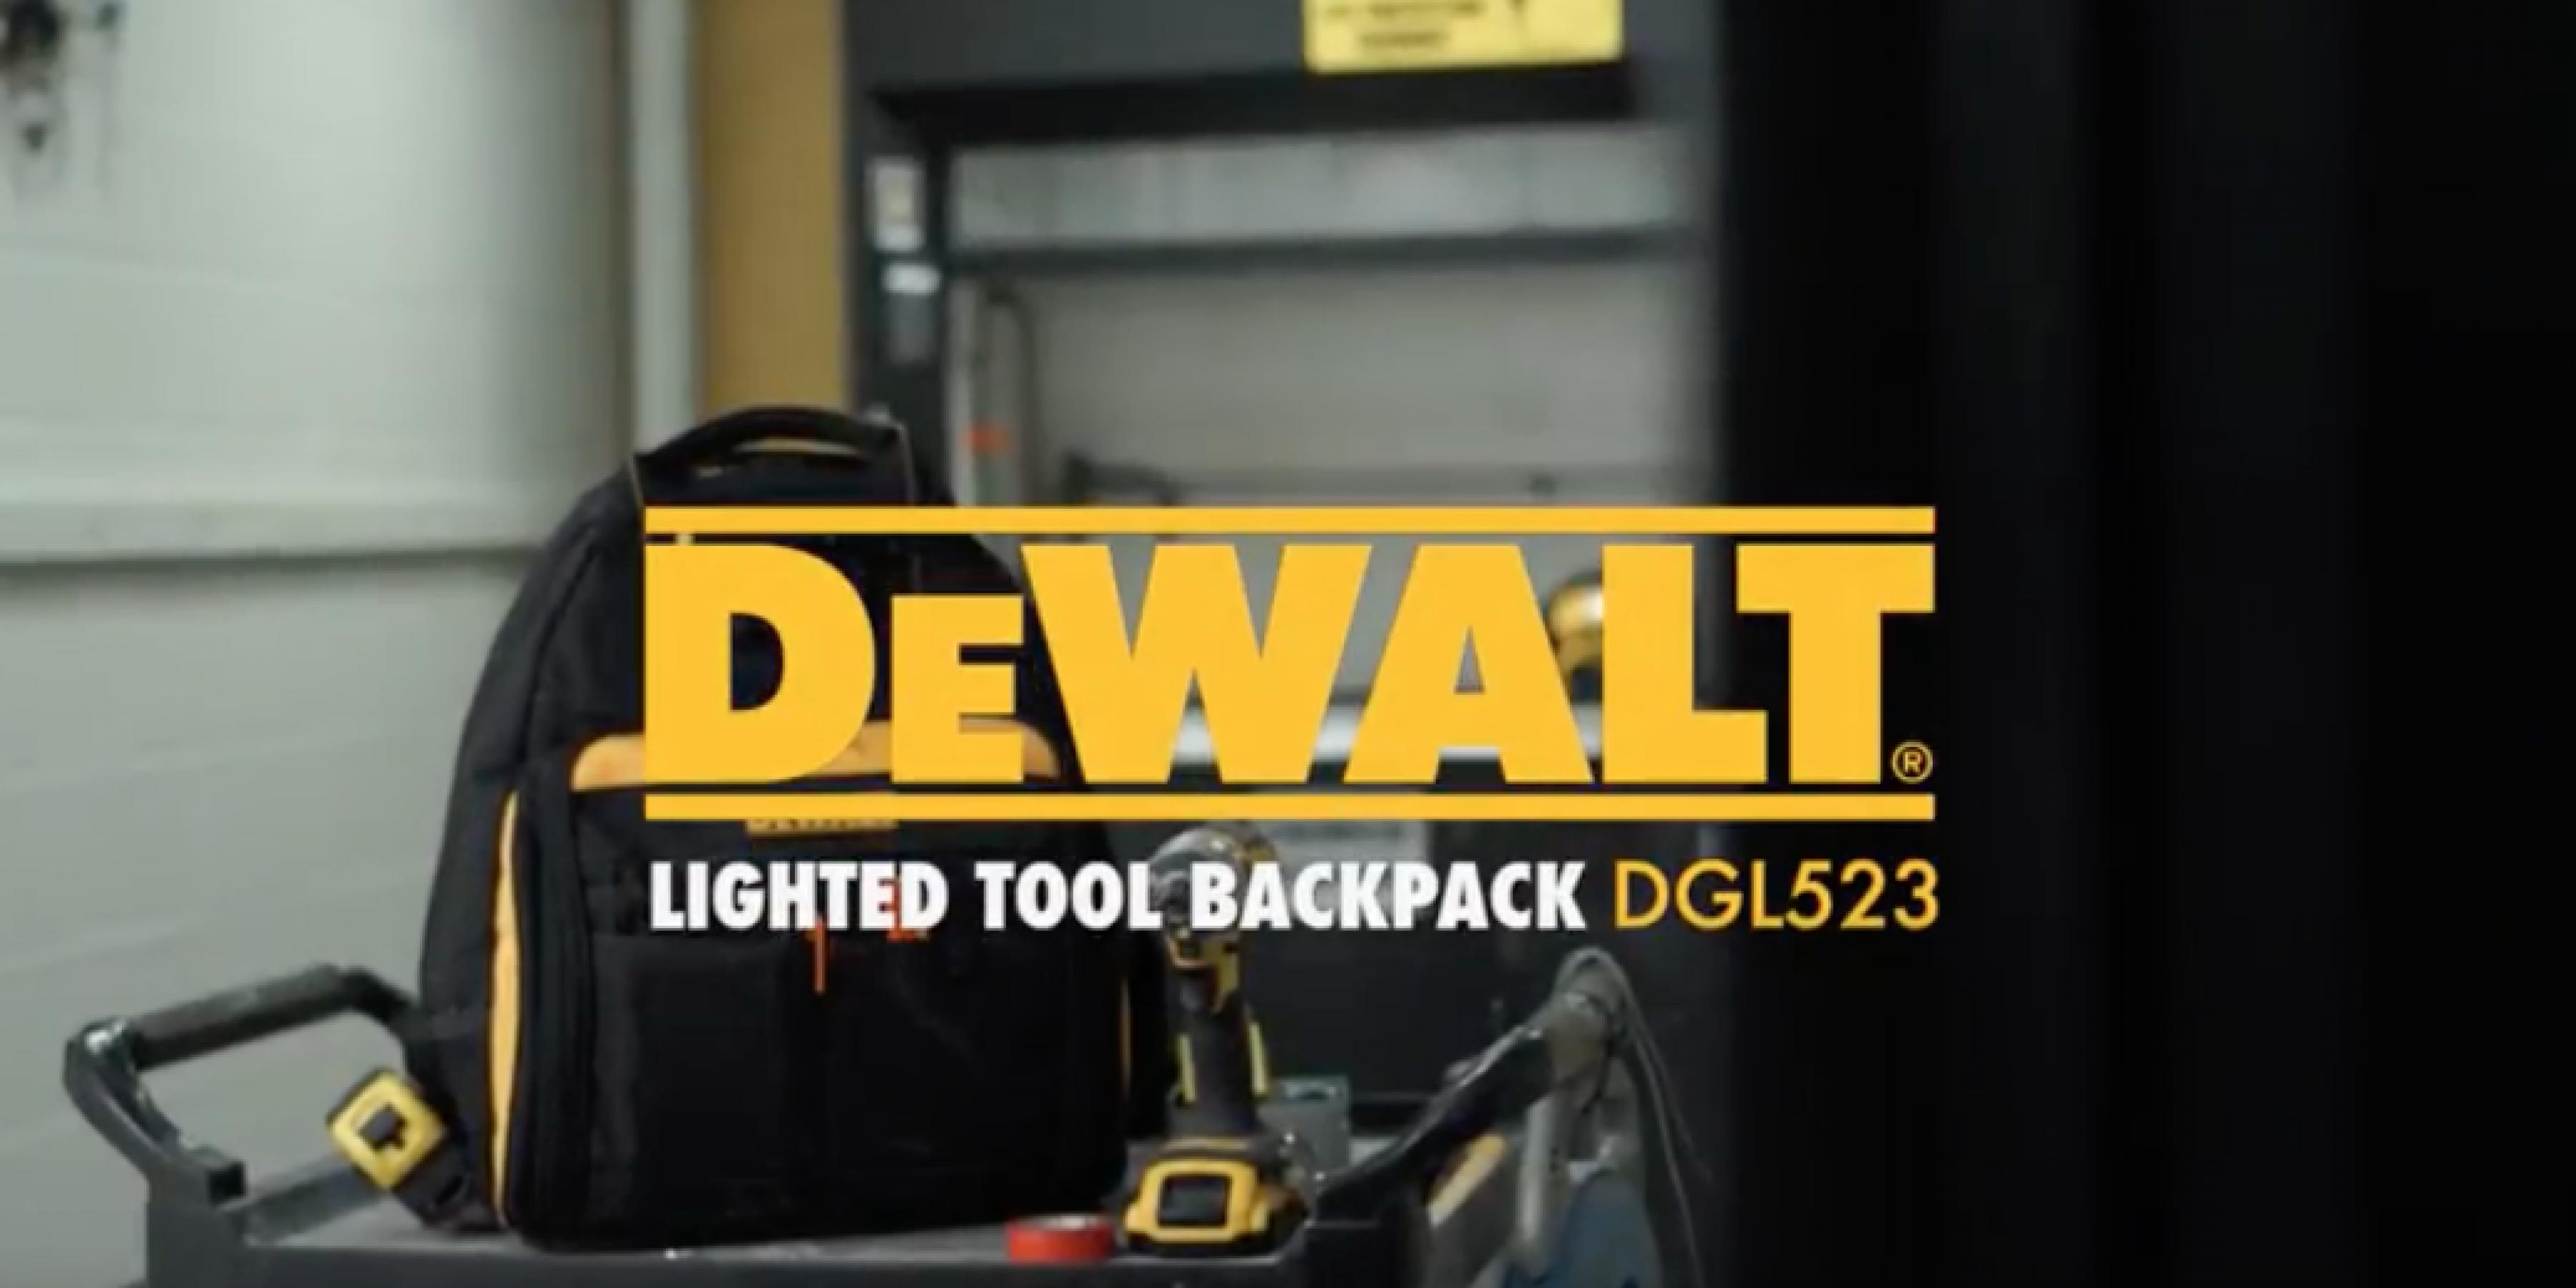 DEWALT DGL523 LightedTool Backpack